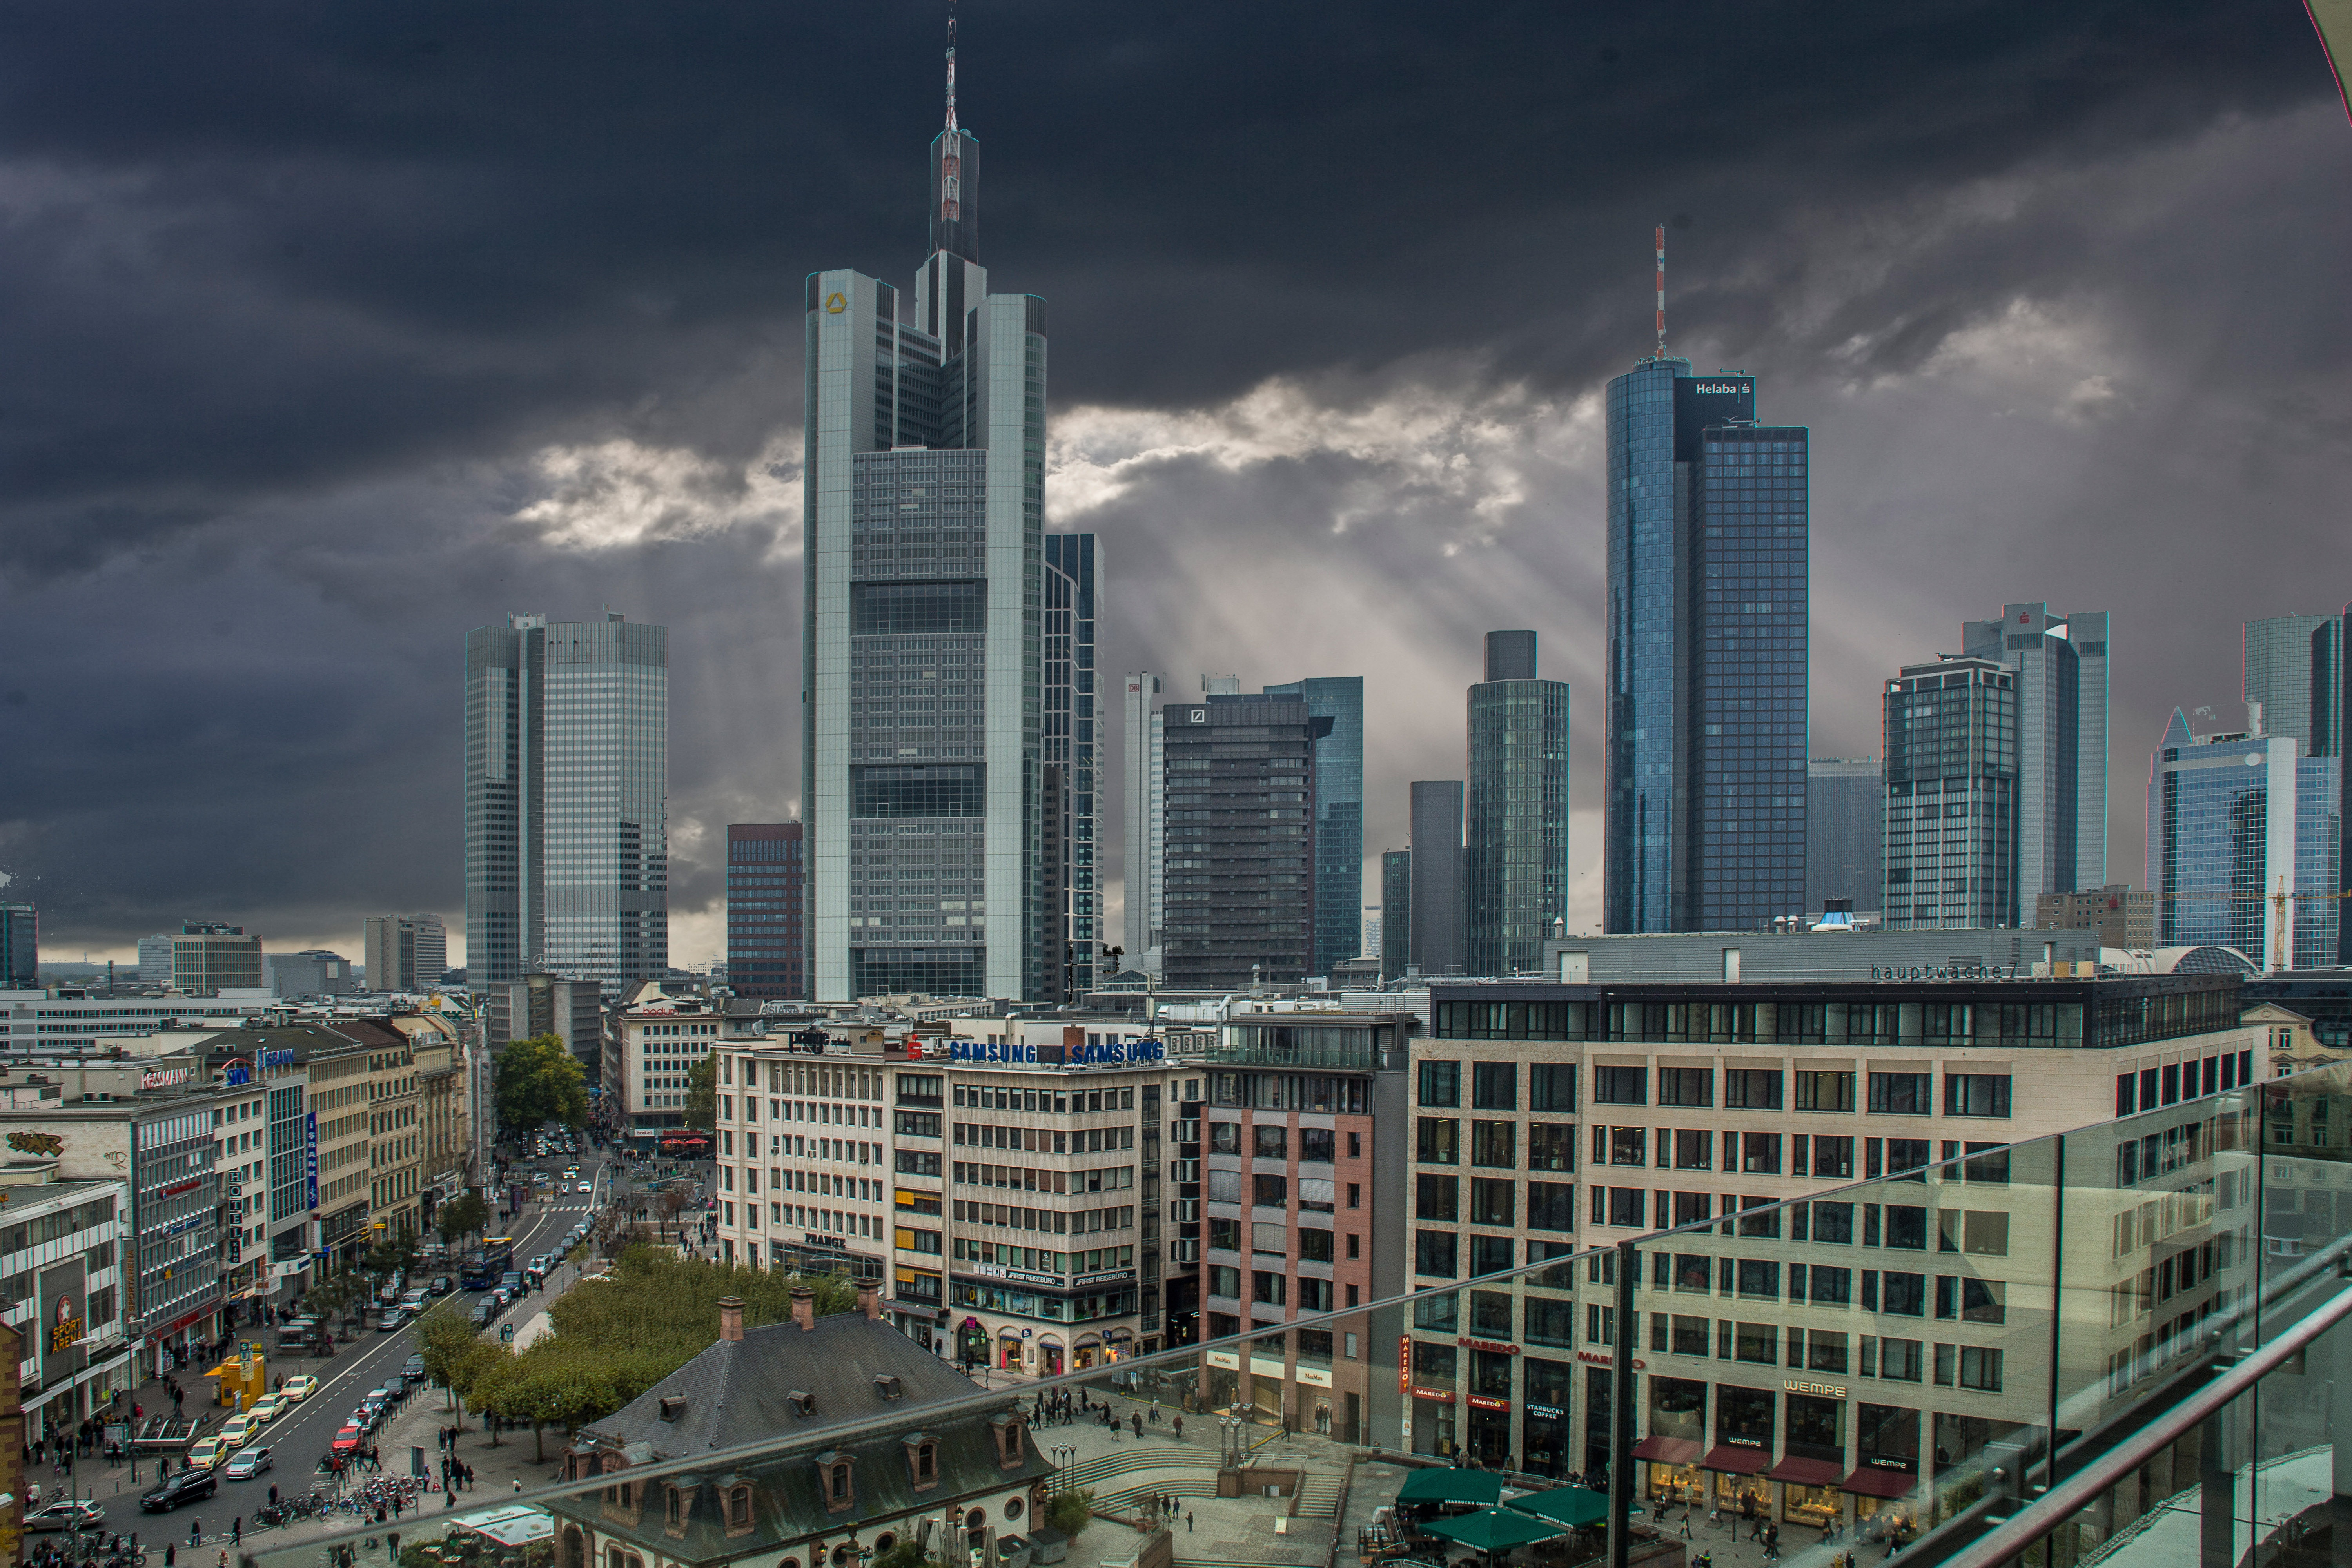 tall buildings in frankfurt image - free stock photo - public domain photo